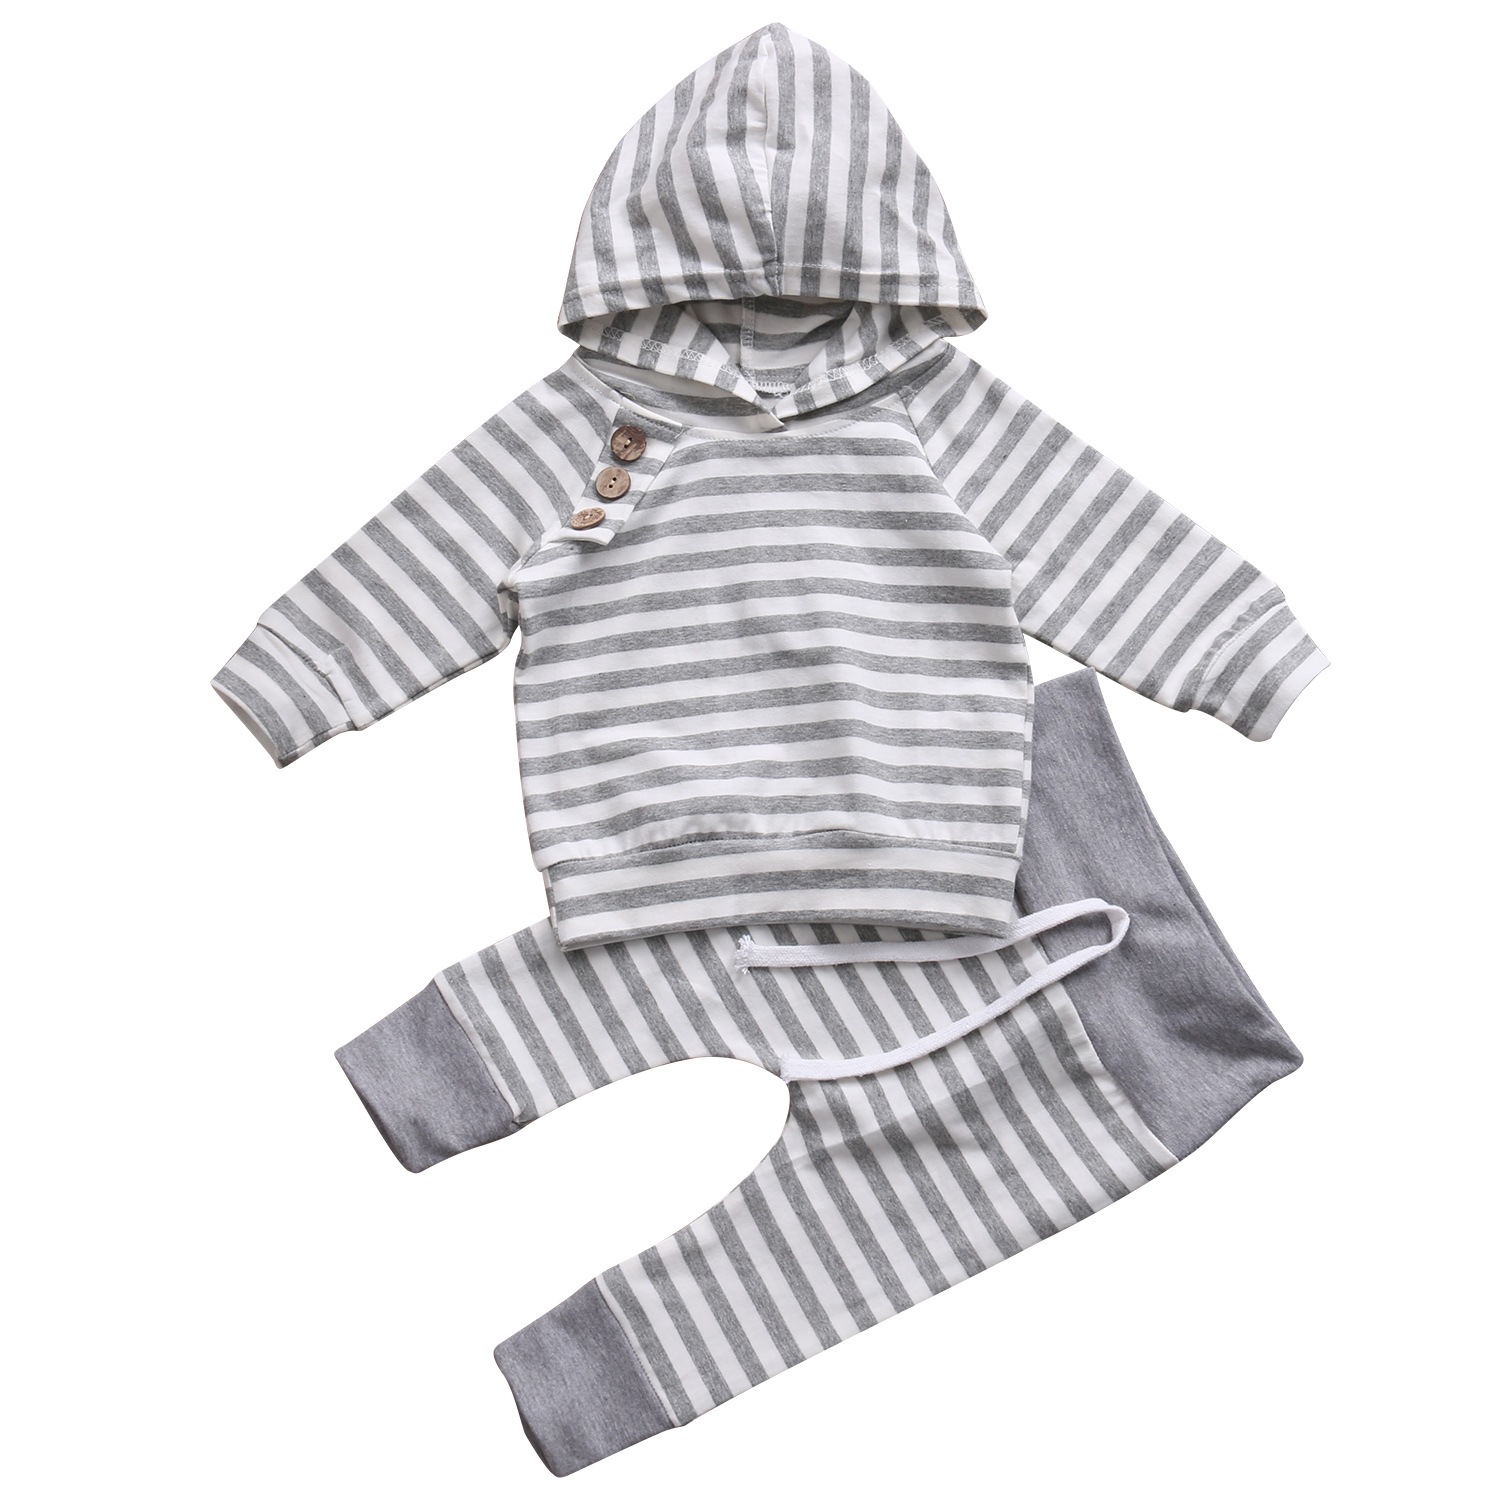 Toddler Newborn Infant Kids Baby Boy Girl Hoodie Tops Long Sleeve Shirt Pants Striped Outfit 2Pcs Set Clothes 2Pcs Set toddler kids baby girls clothing cotton t shirt tops short sleeve pants 2pcs outfit clothes set girl tracksuit